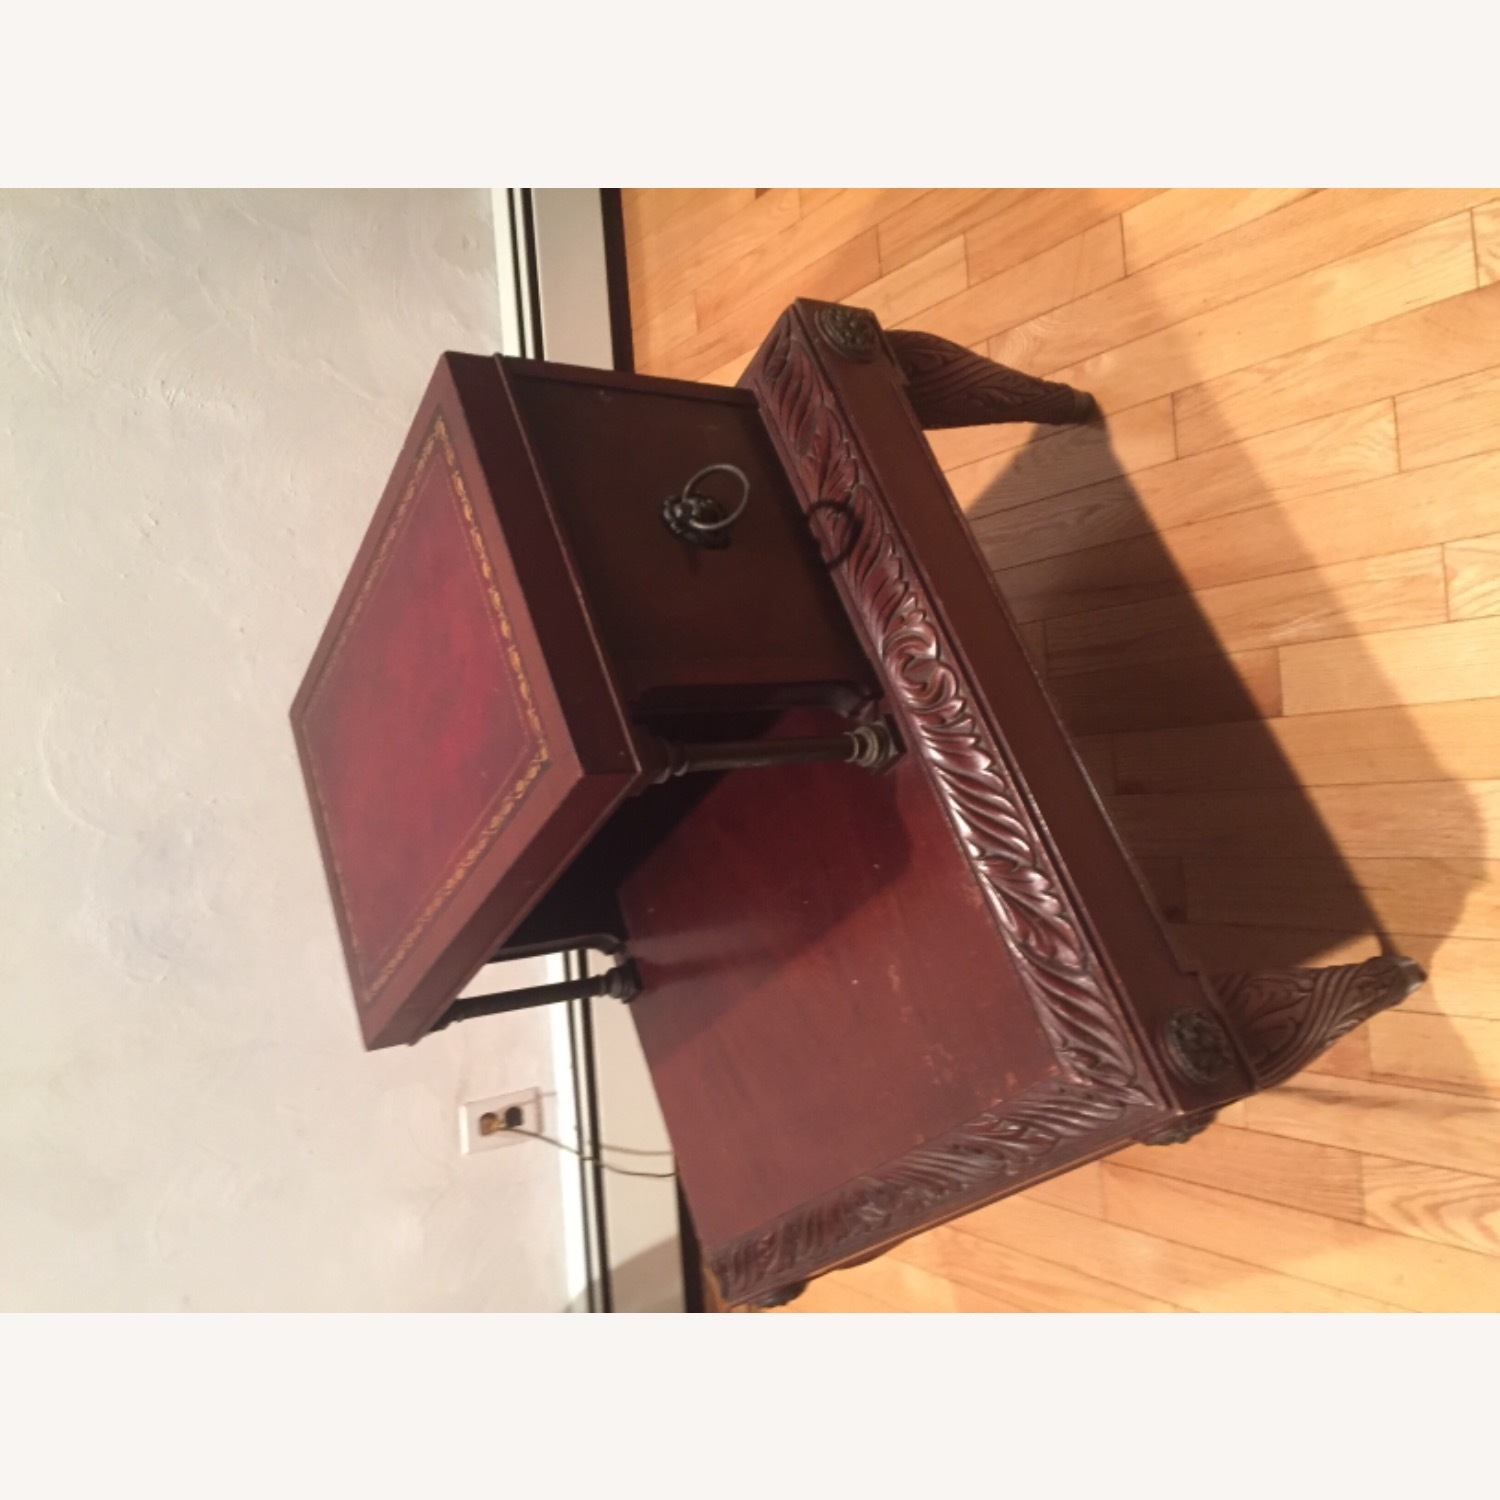 Antique Mahogany/Leather Side Table - image-1